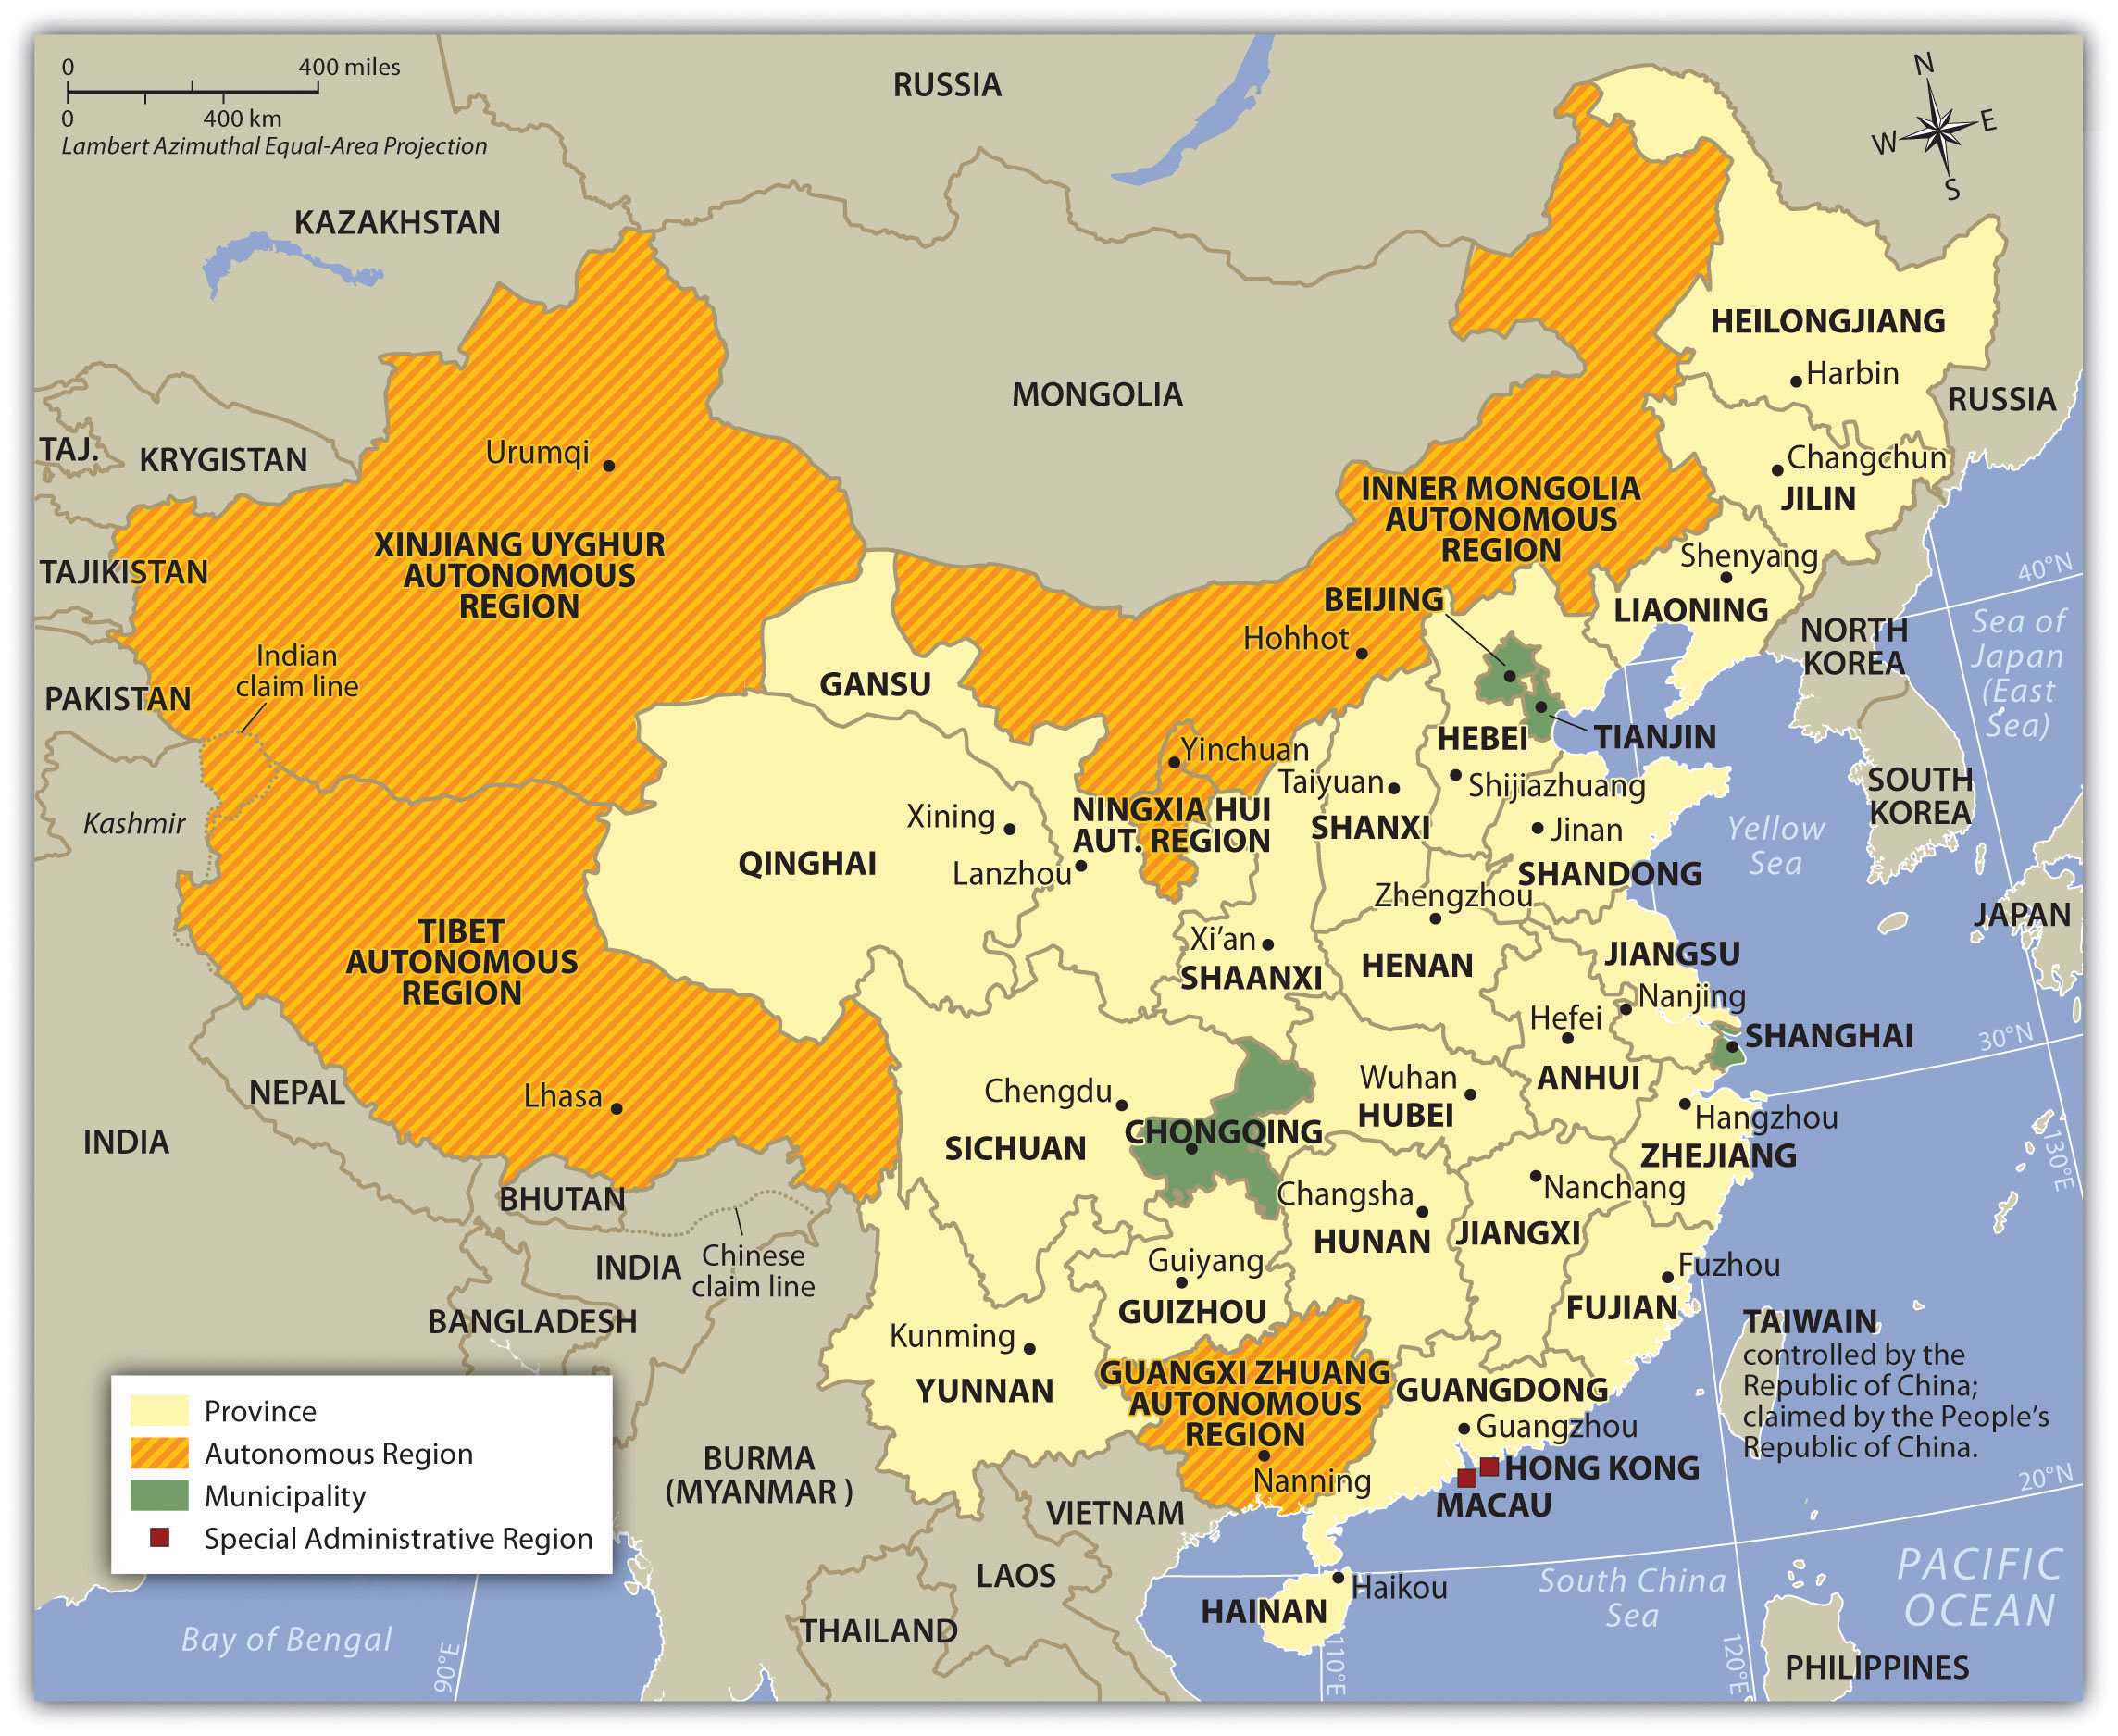 Provinces, districts, and autonomous regions of China.